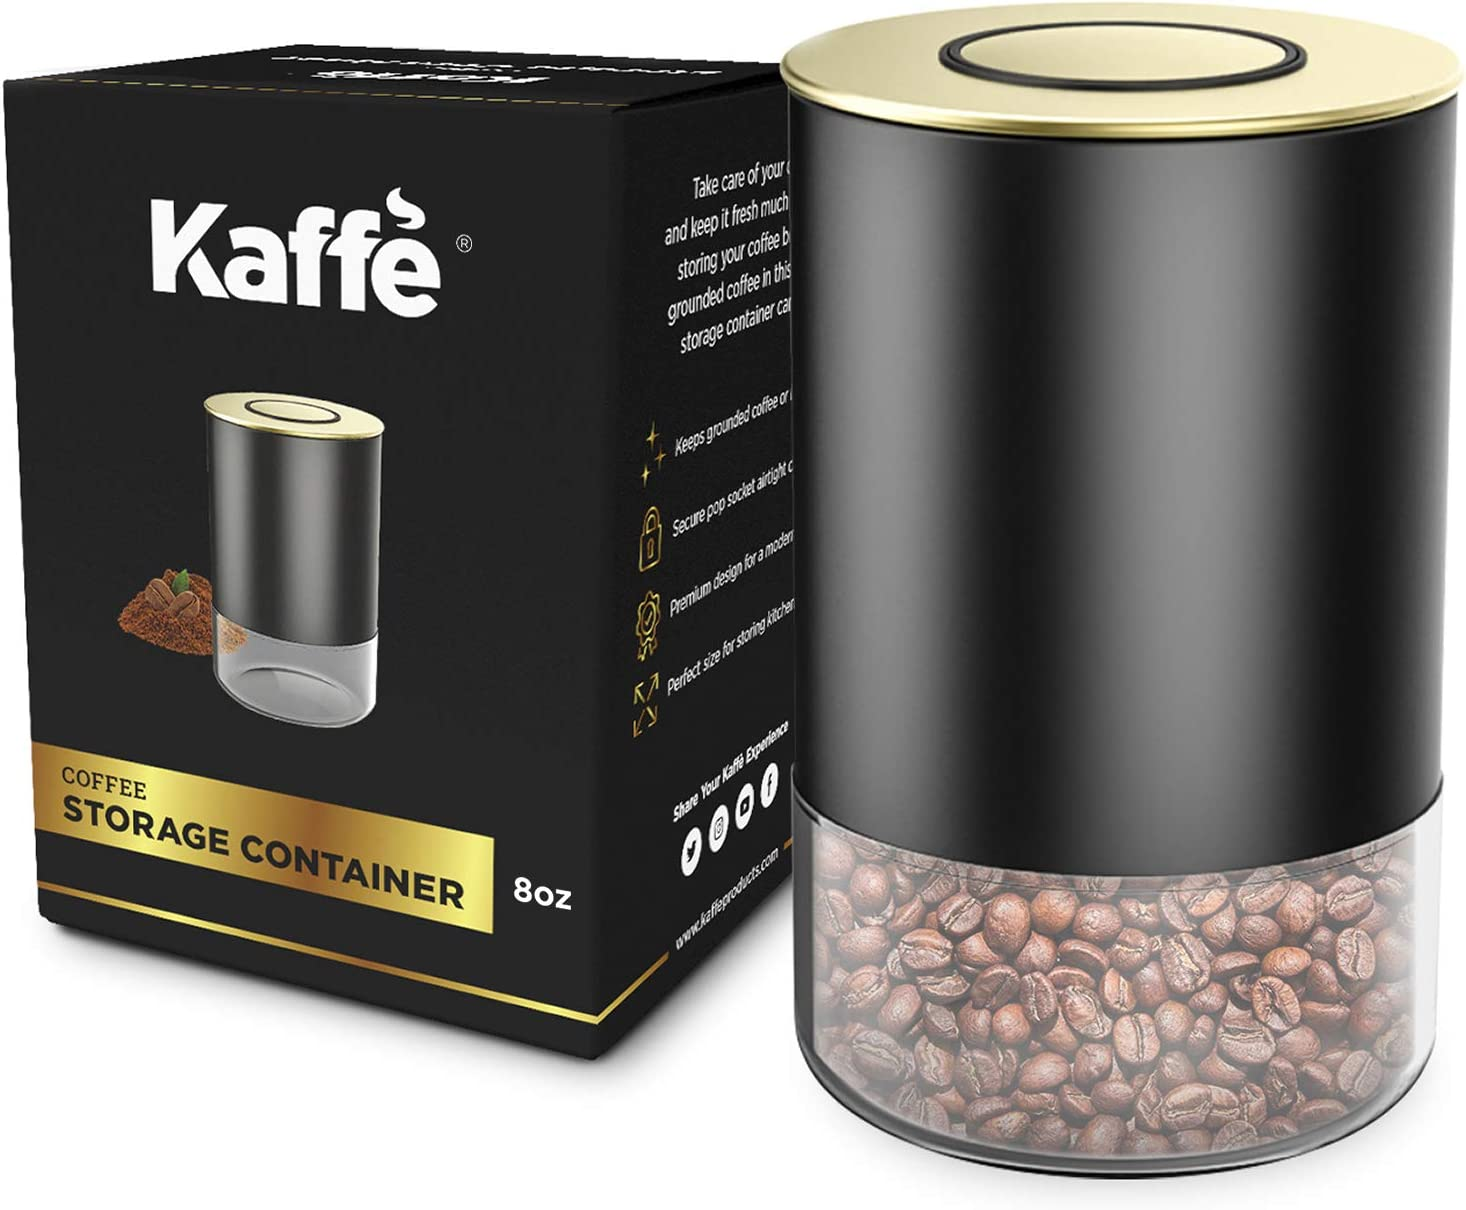 Glass Storage Coffee Container by Kaffe - BPA Free Stainless Steel Canister with Airtight Lid (8oz)